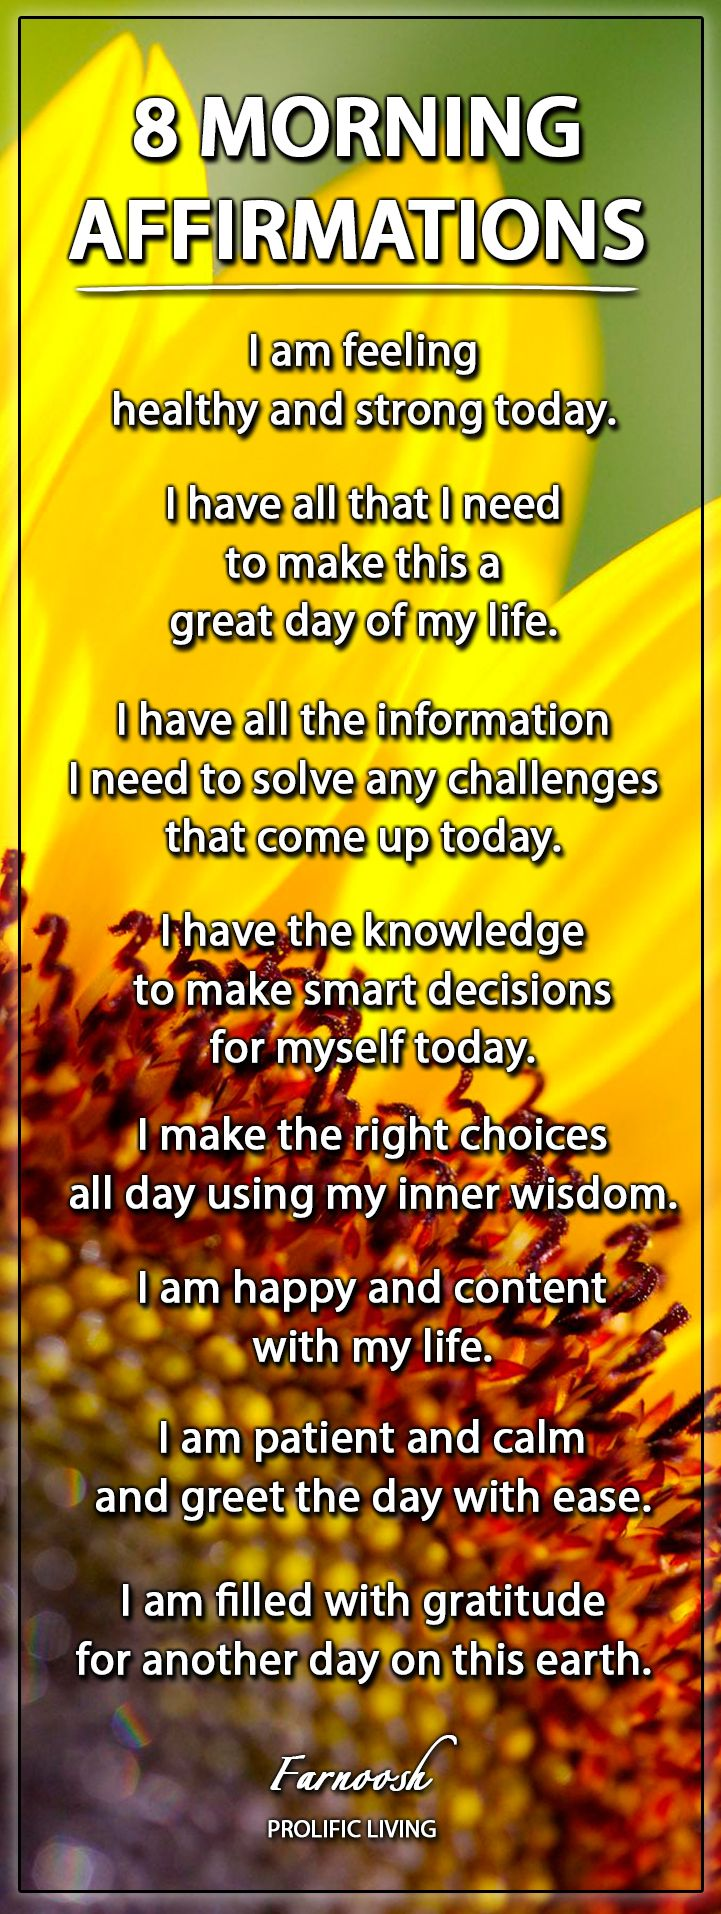 8 morning affirmations - Google Search